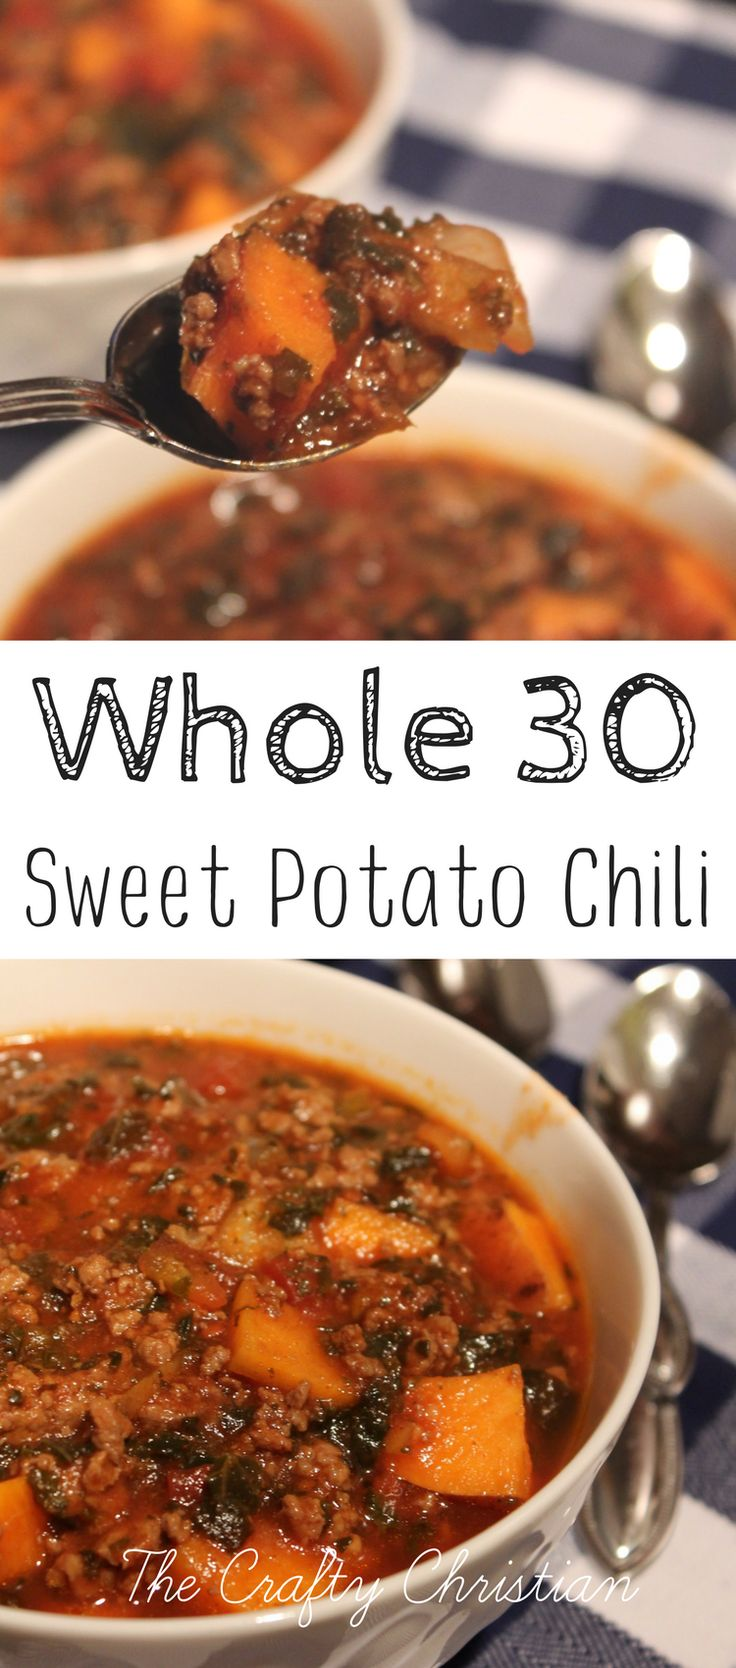 If you're looking for a hearty Paleo & Whole30 Chili recipe, then this one is perfect for you!  It's nutrient dense, with healthy fats, complex carbs, and veggies.  This chili is a must-try if you're sensitive to legumes and looking for a... #beefchilirecipes #crockpotchili #crockpotchilirecipes